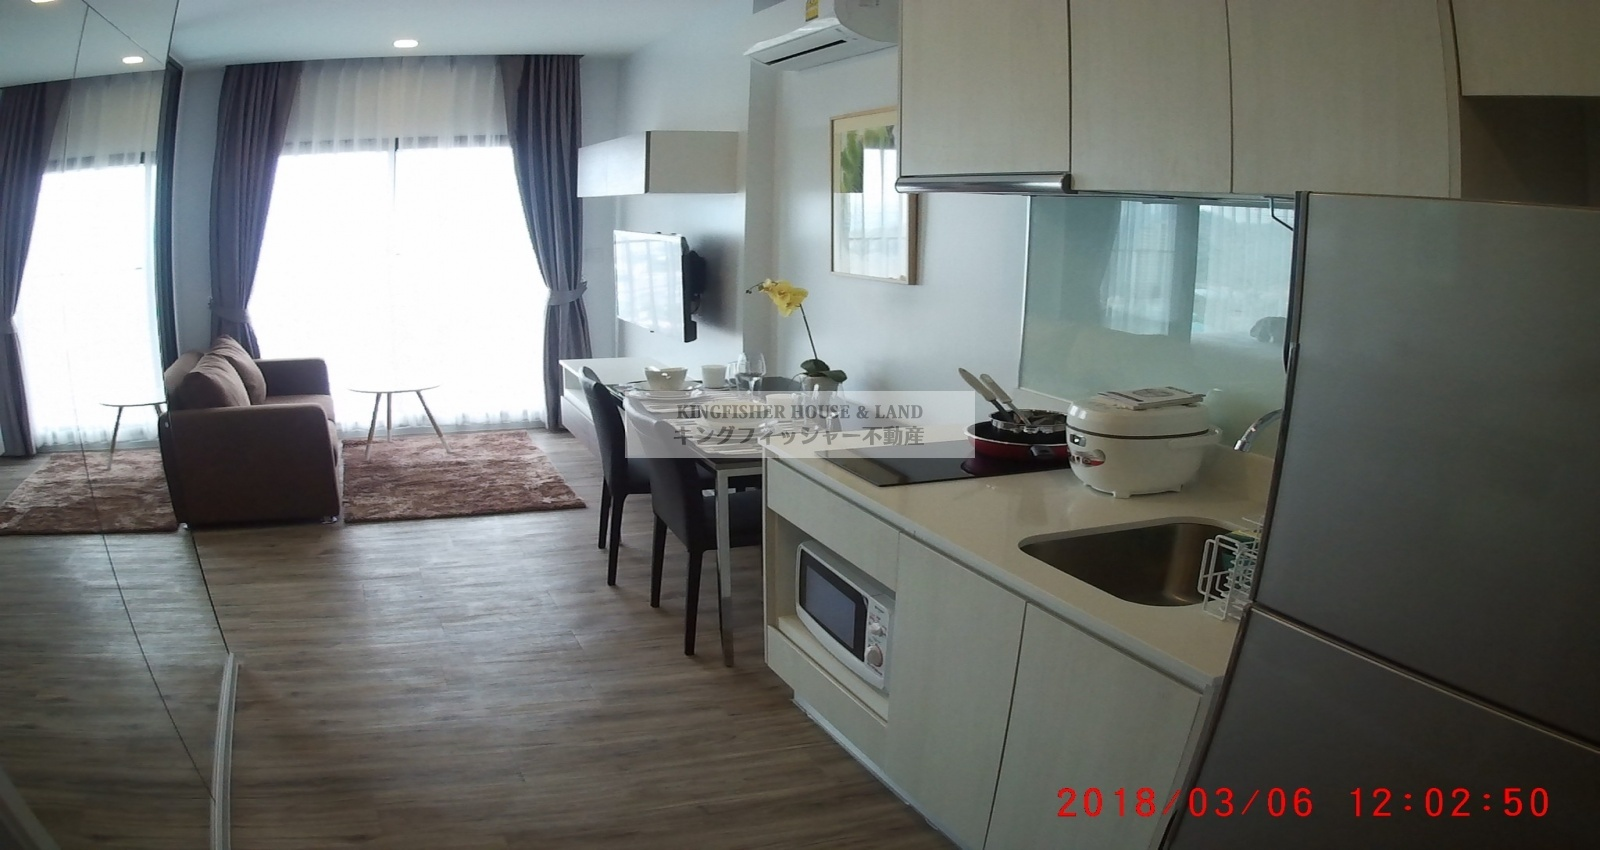 1 Bedrooms, Condominium, For Rent, 1 Bathrooms, Listing ID 1227, Sriracha, Chonburi, Thailand, 20110,